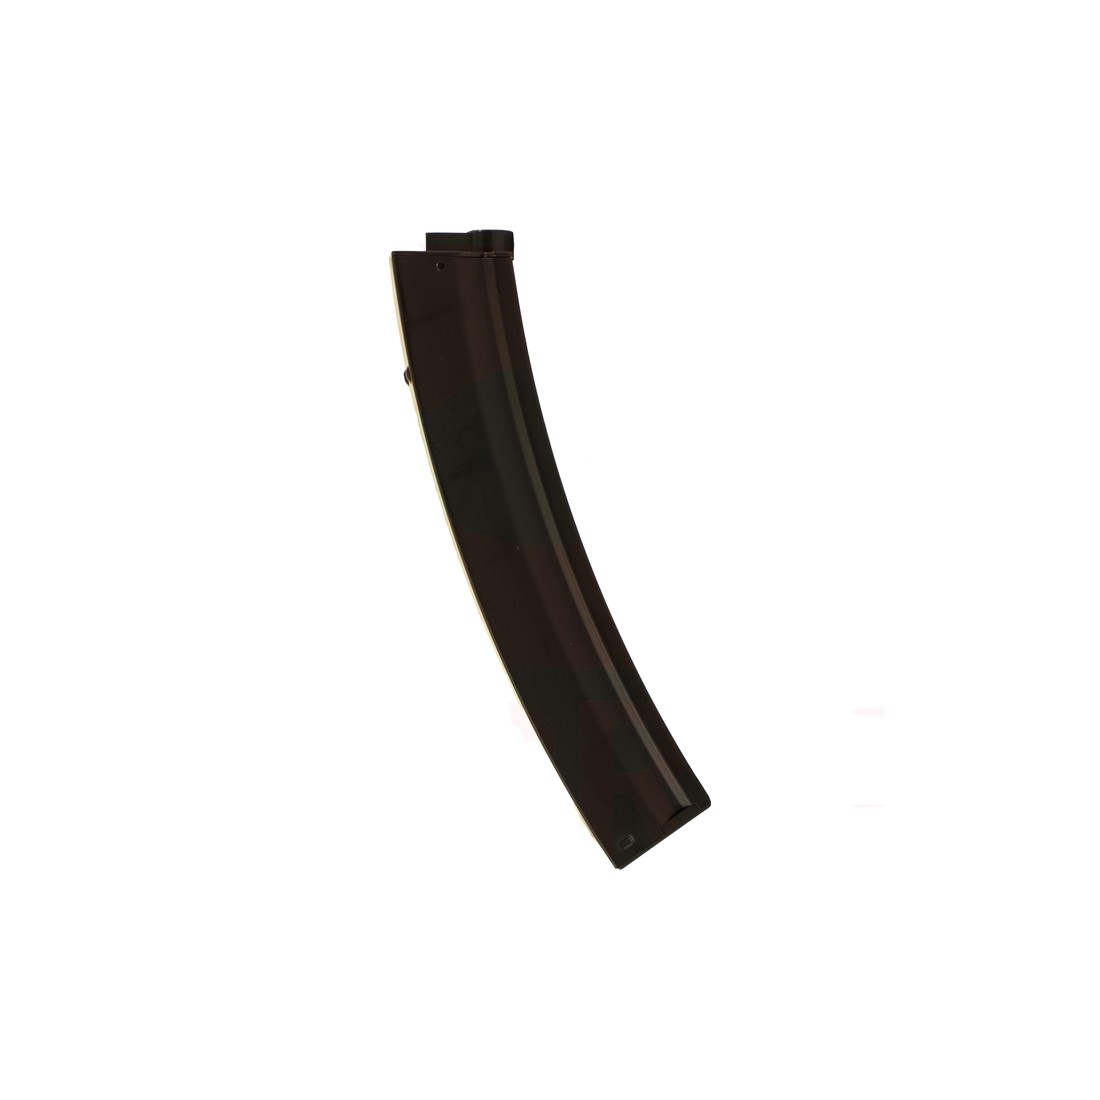 Nurpol MP5 Airsoft AEG High Capacity Magazine 200rd